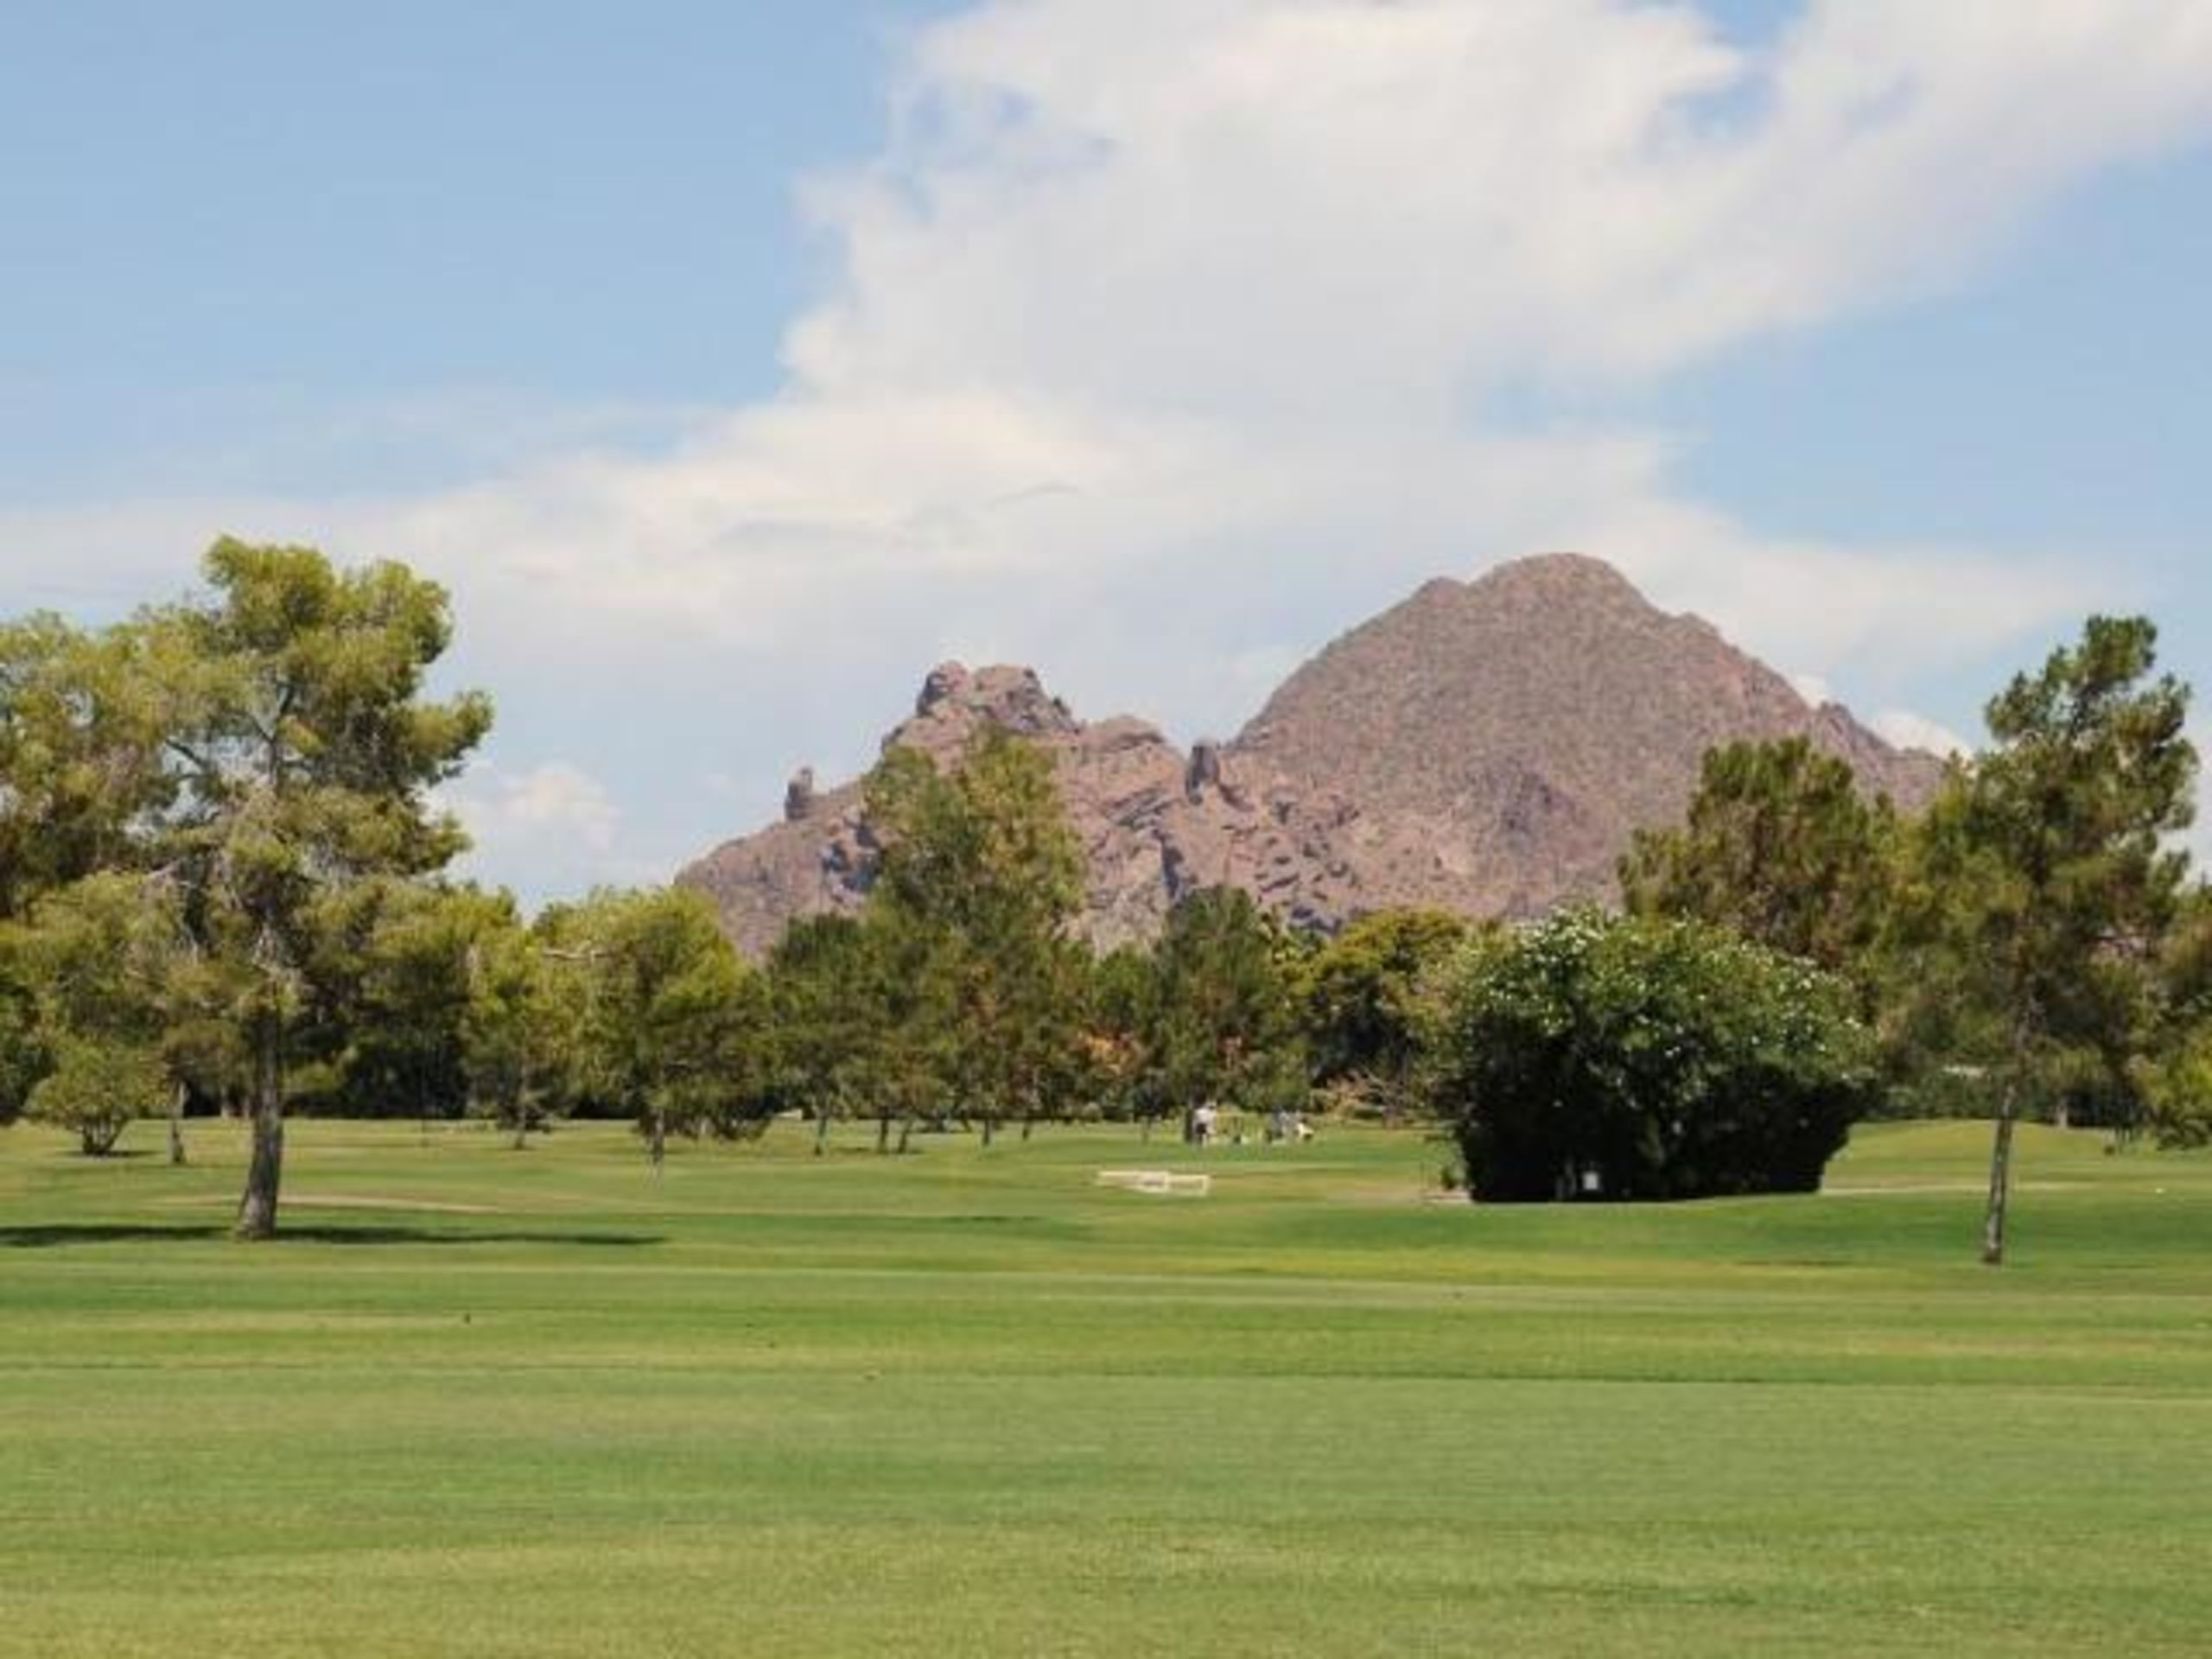 The Adobe Golf Course at the Biltmore Golf Course